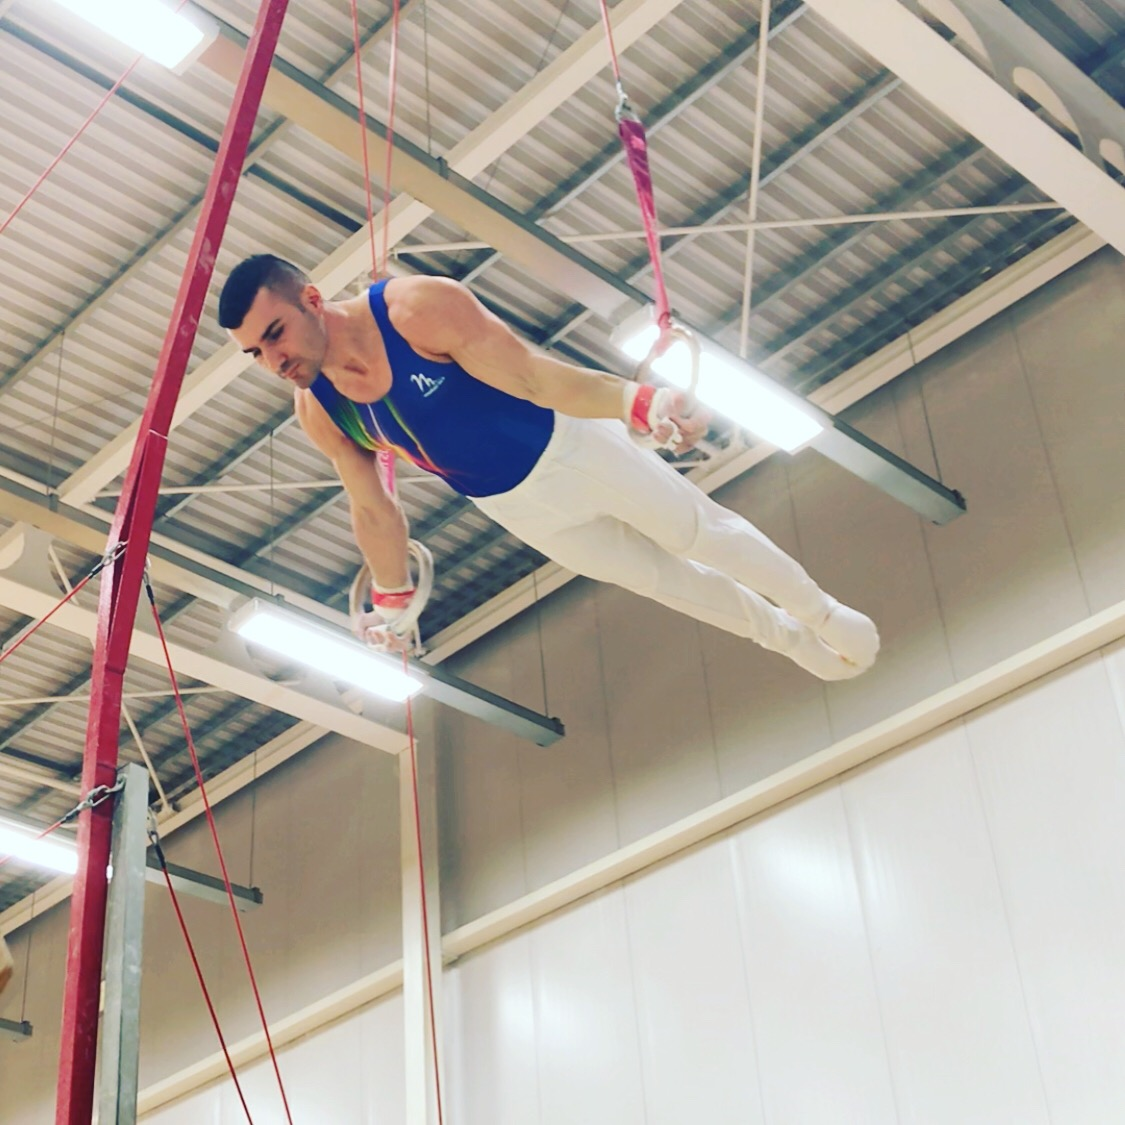 coach Stef from Elite gymnastics was the only one performing a Maltese Cross on the Rings at the 2019 London Championships